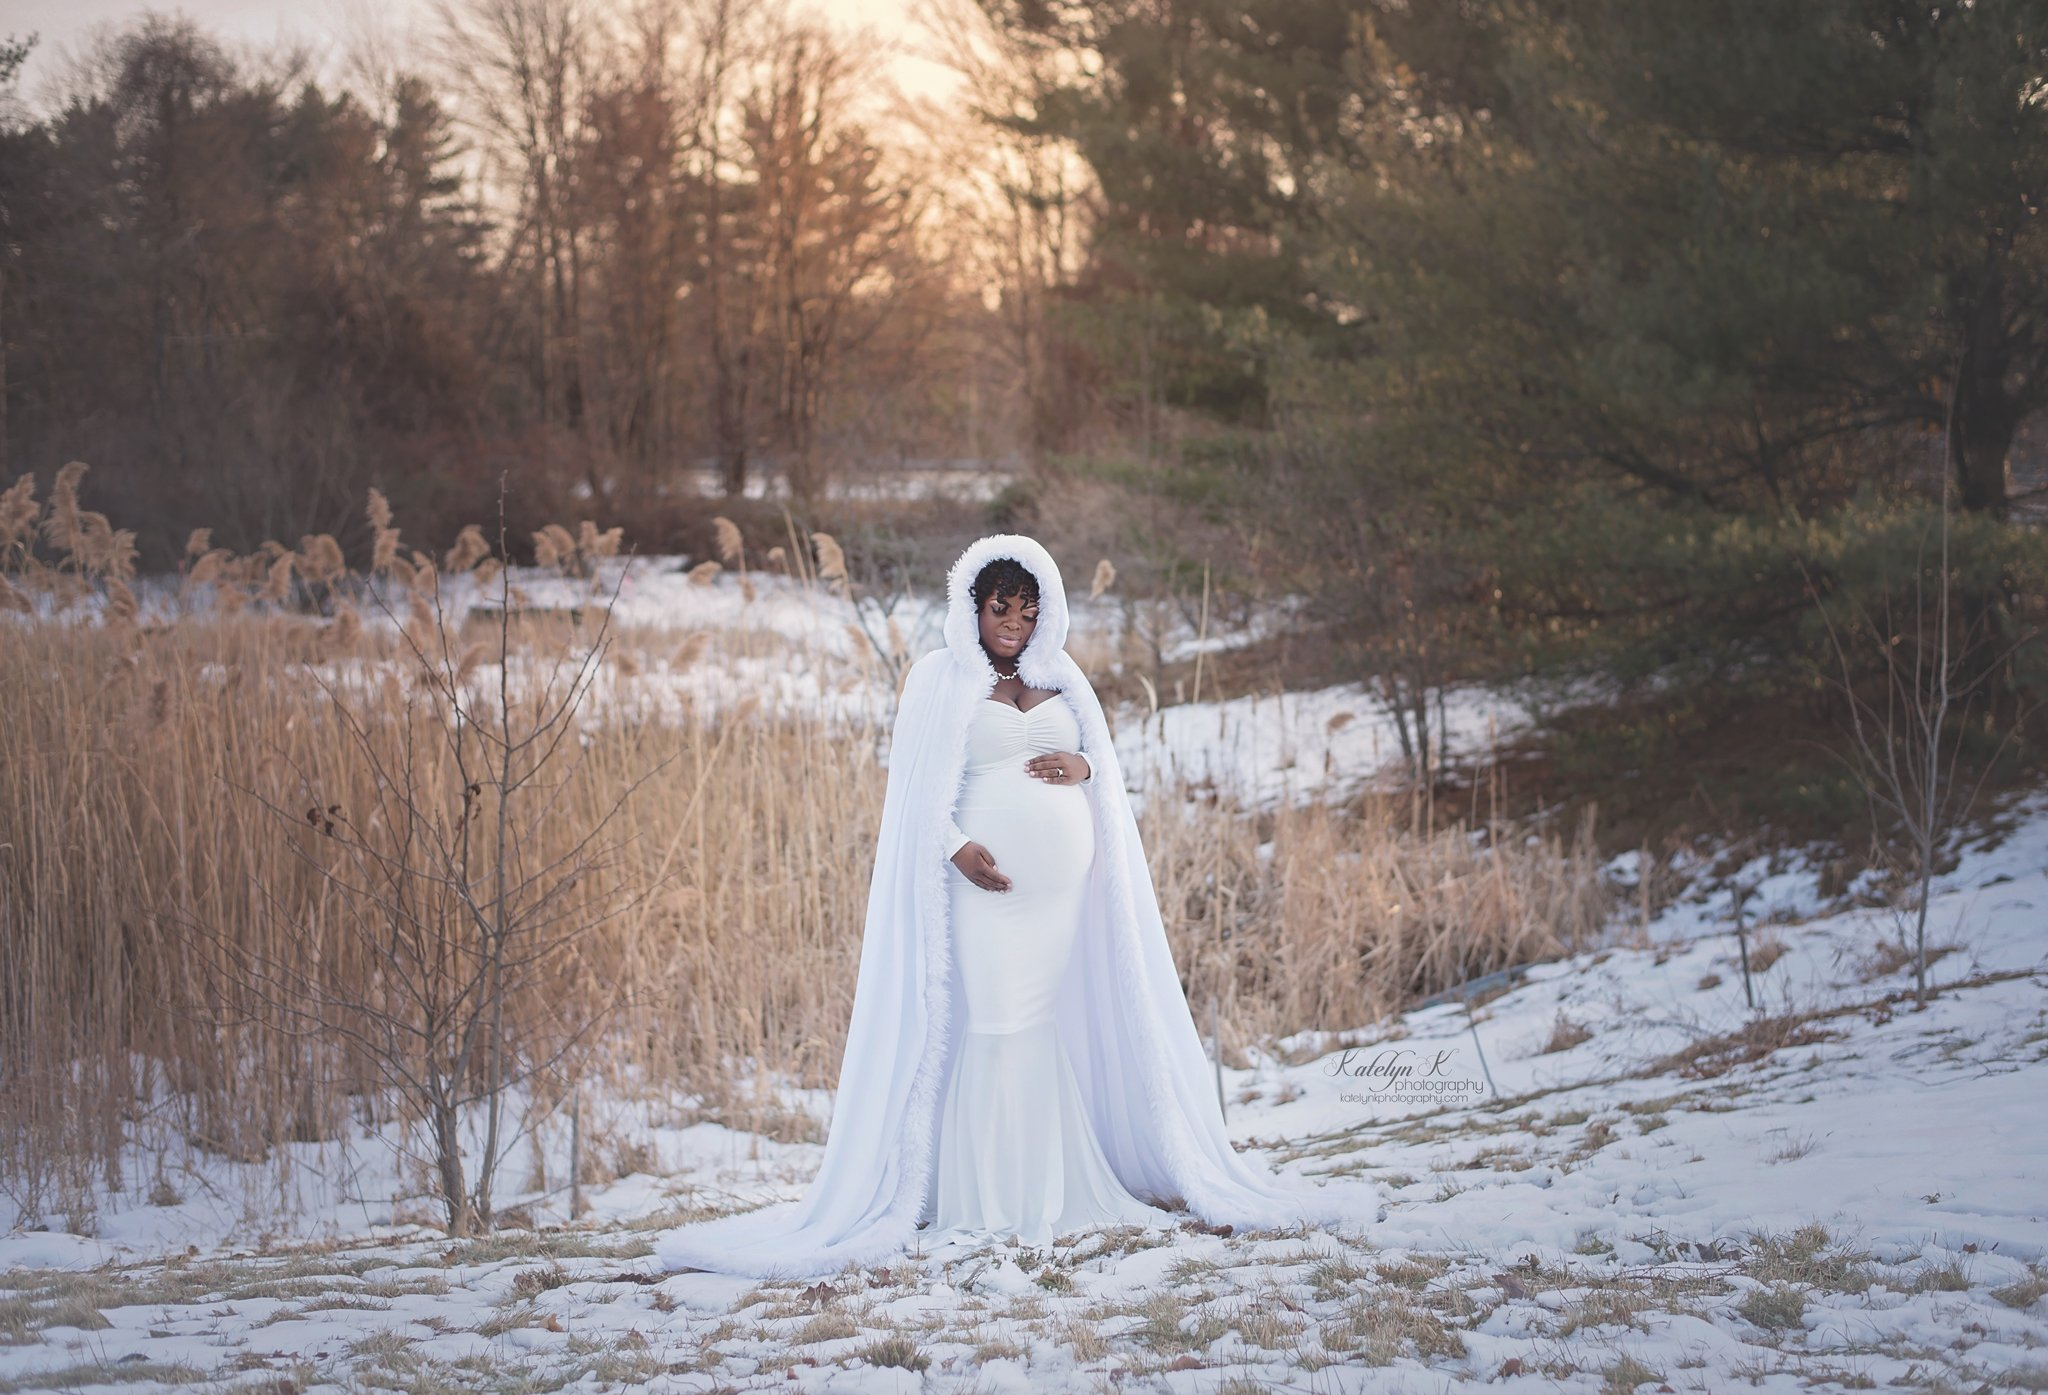 Cloak - Formal Gowns And Dresses For